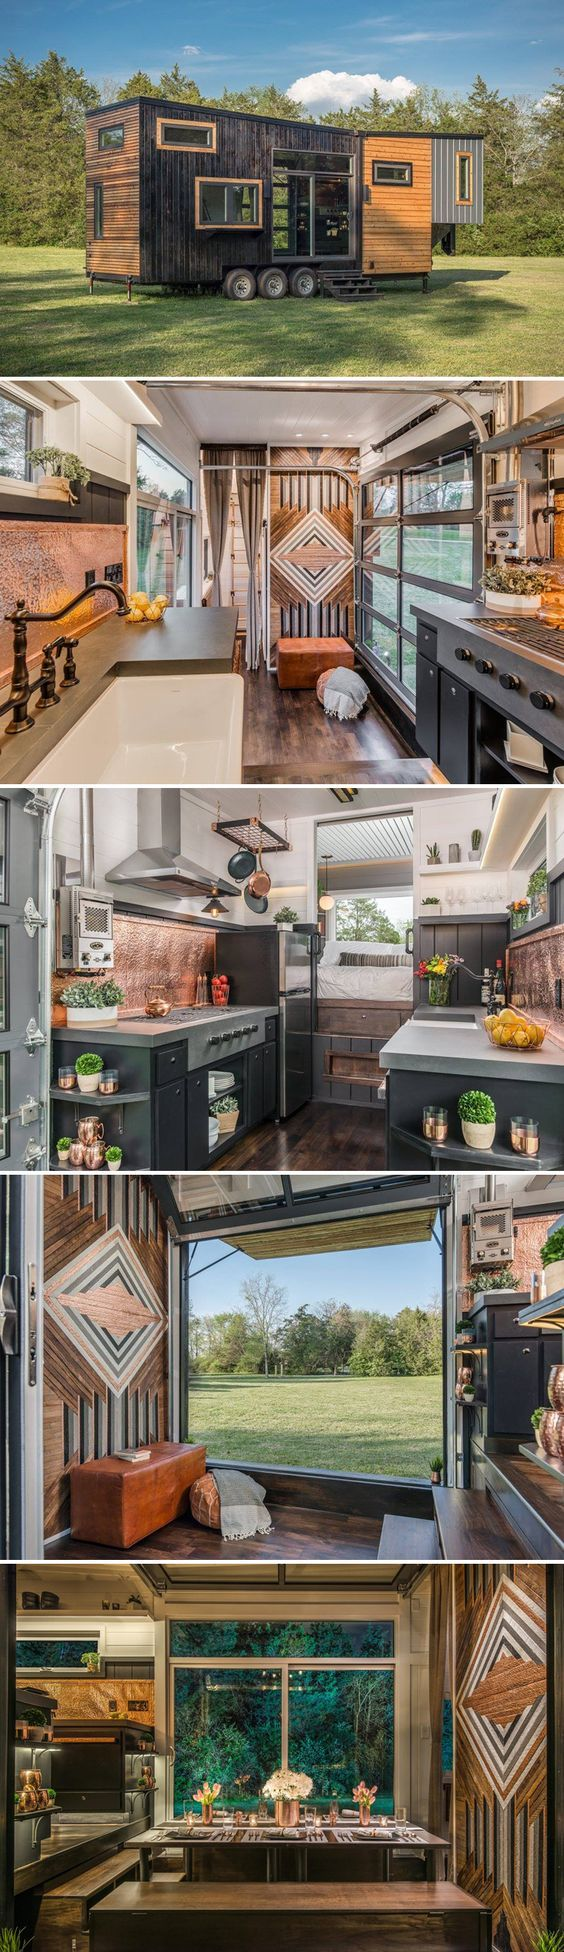 View toward kitchen the alpha tiny home by new frontier tiny homes - The Escher Is A Luxury Gooseneck Tiny House Built By New Frontier Tiny Homes The